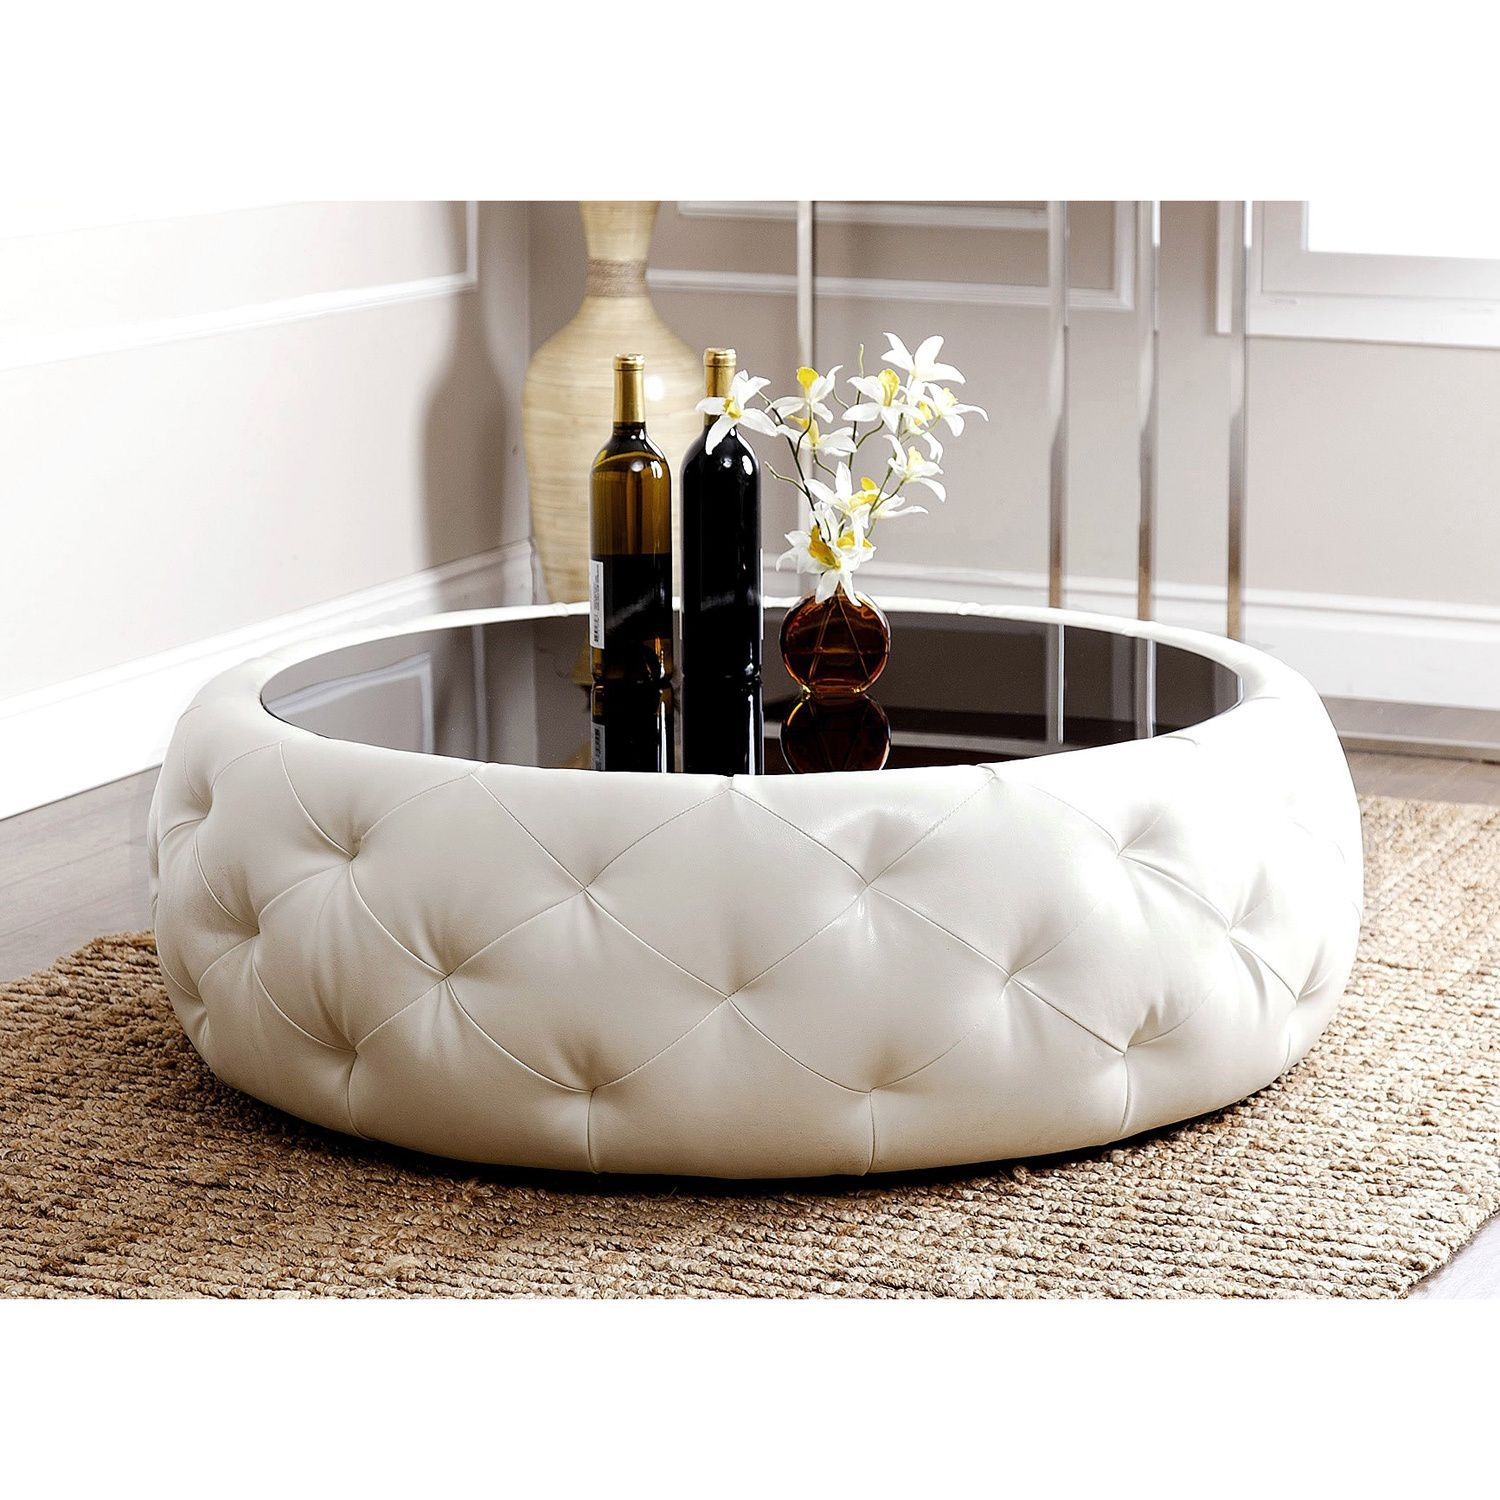 ABBYSON LIVING Havana Round Leather Coffee Table Overstock